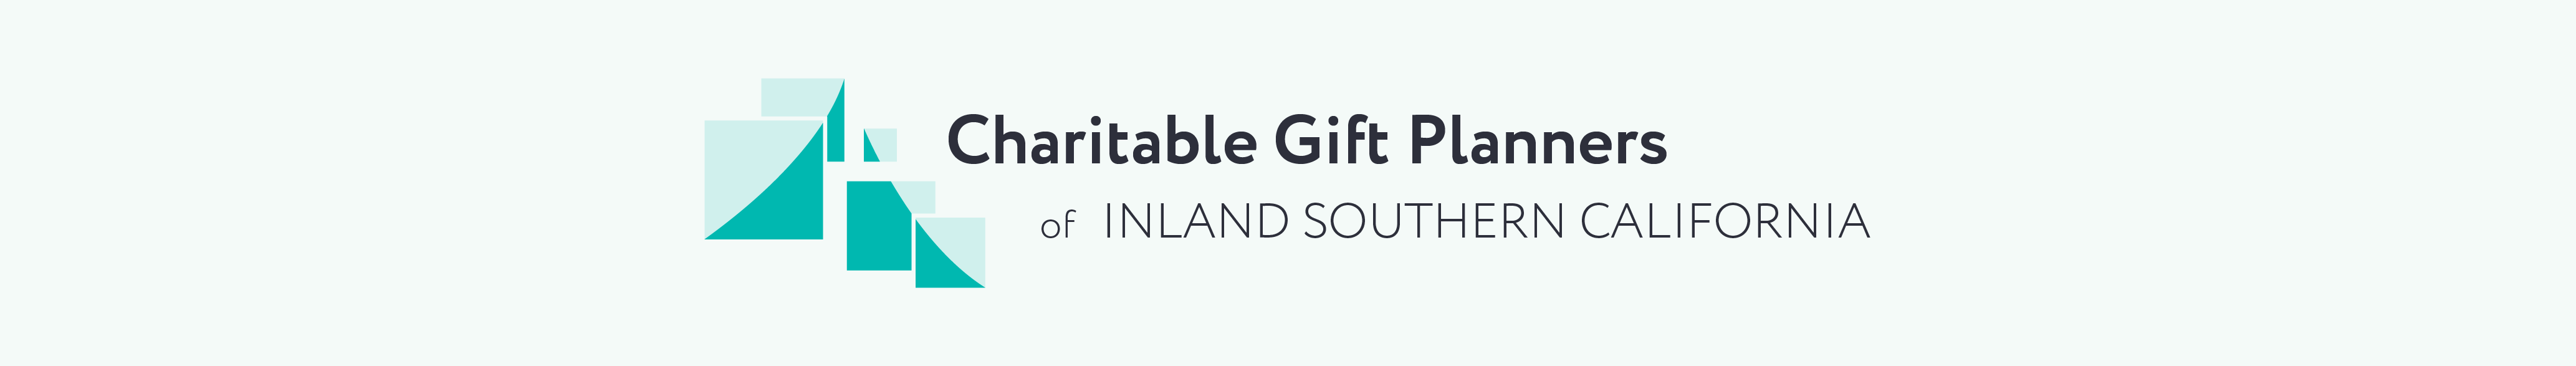 Charitable Gift Planners of Inland Southern California Logo